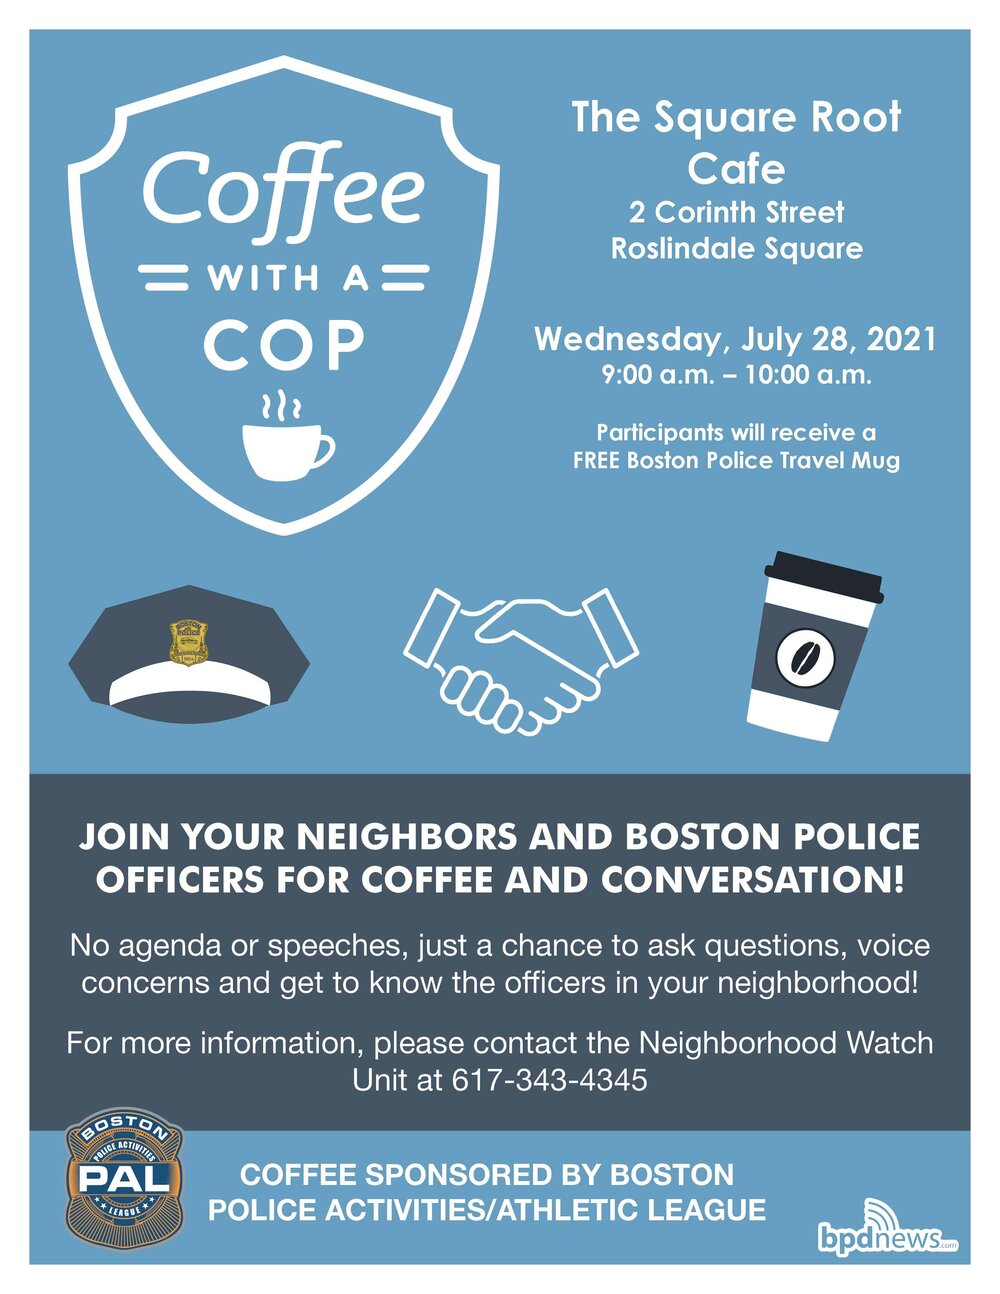 Coffee with a Cop is Stopping by Roslindale Square Next Wednesday